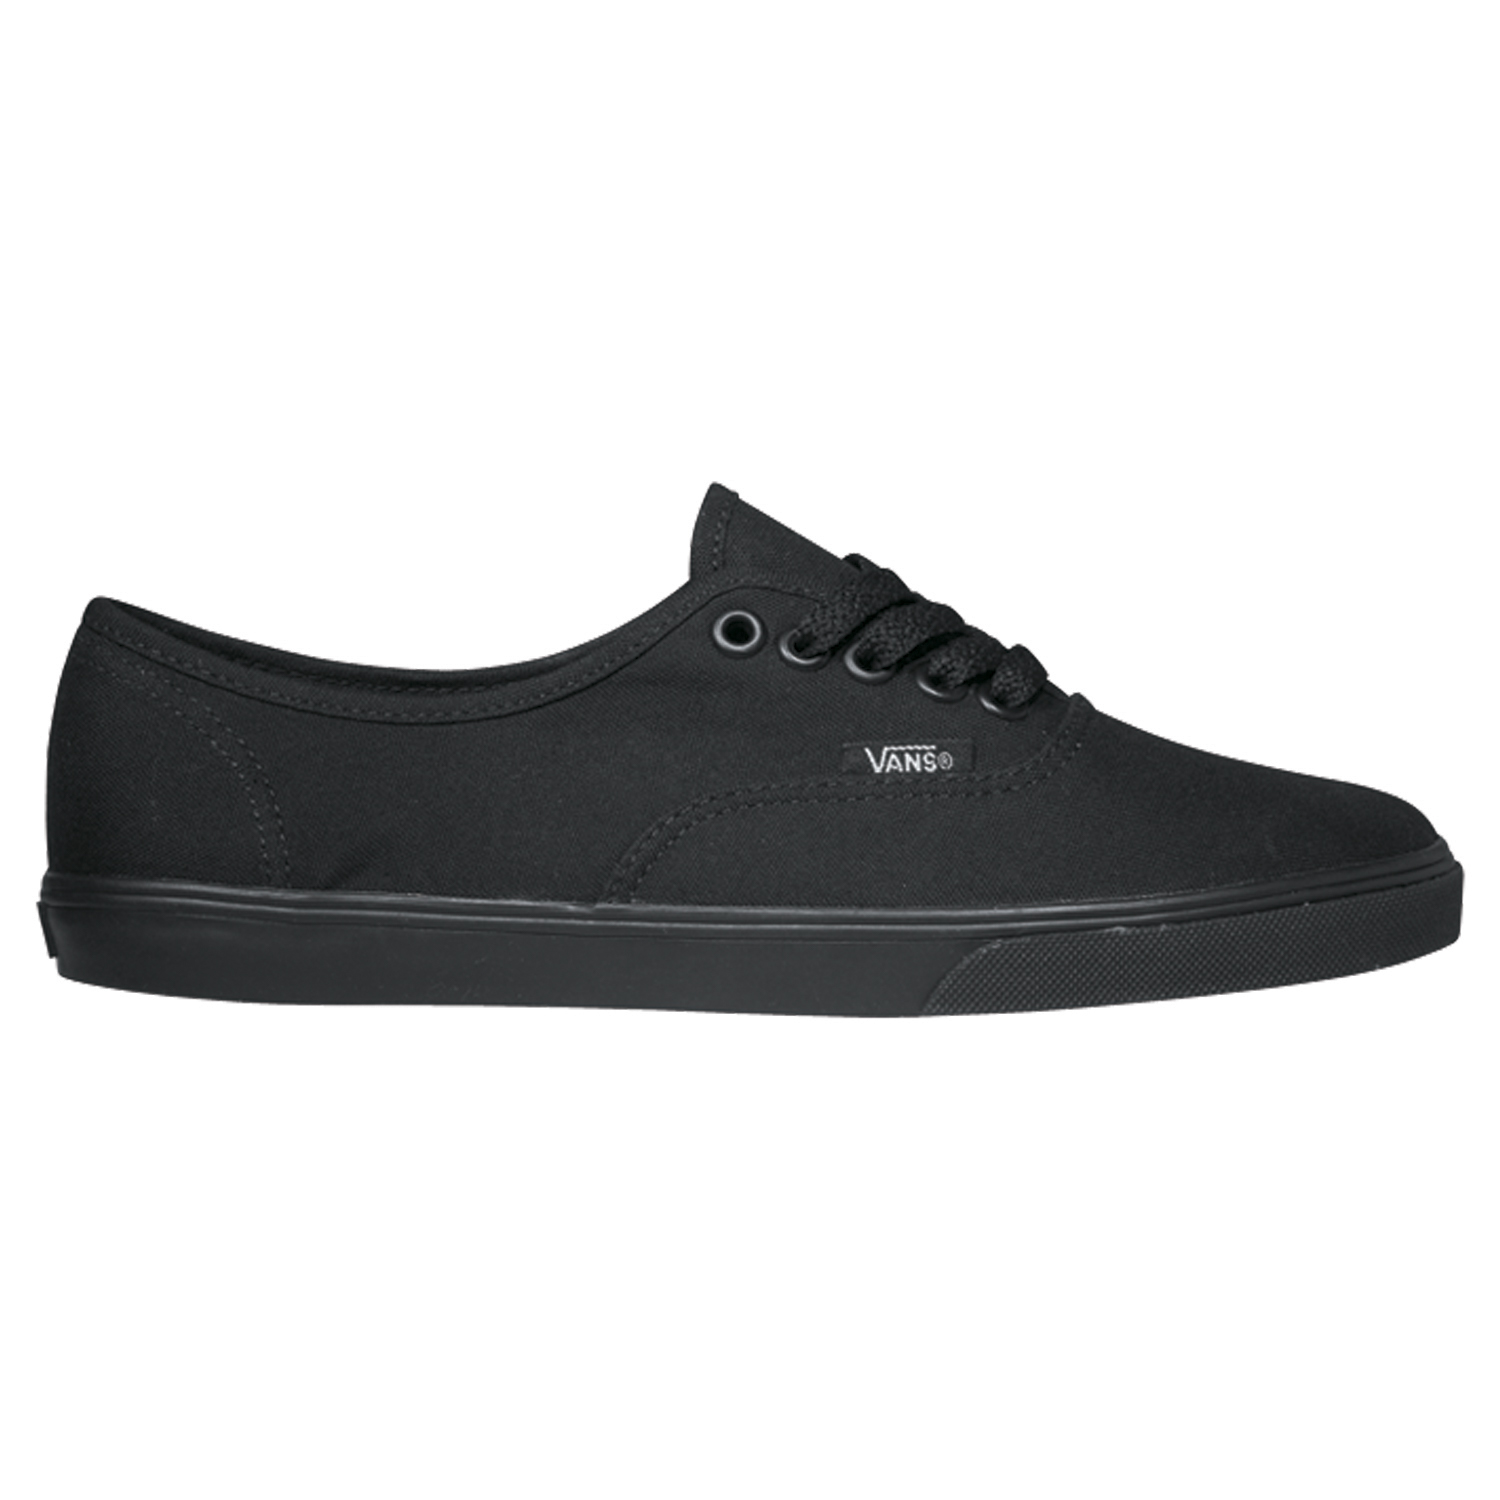 vans-authentic-lo-pro-black-black-99-90